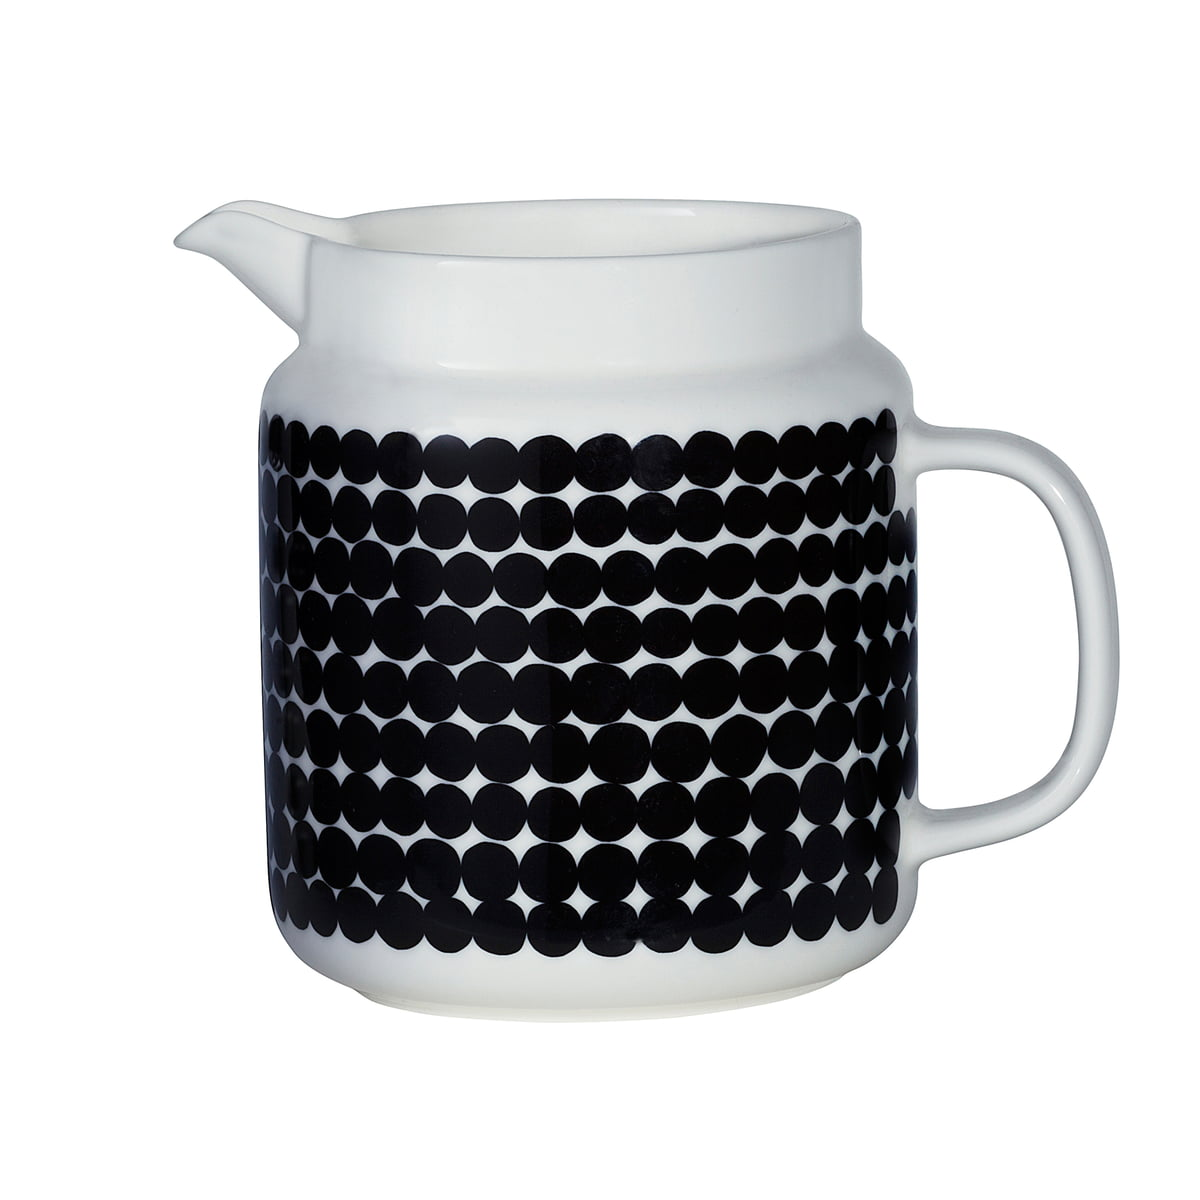 pitcher black singles Takeya two quart black patented and airtight pitcher, made  the rubbermaid classic pitcher is perfect for  includes set of 12 clear drink pitchers with single.